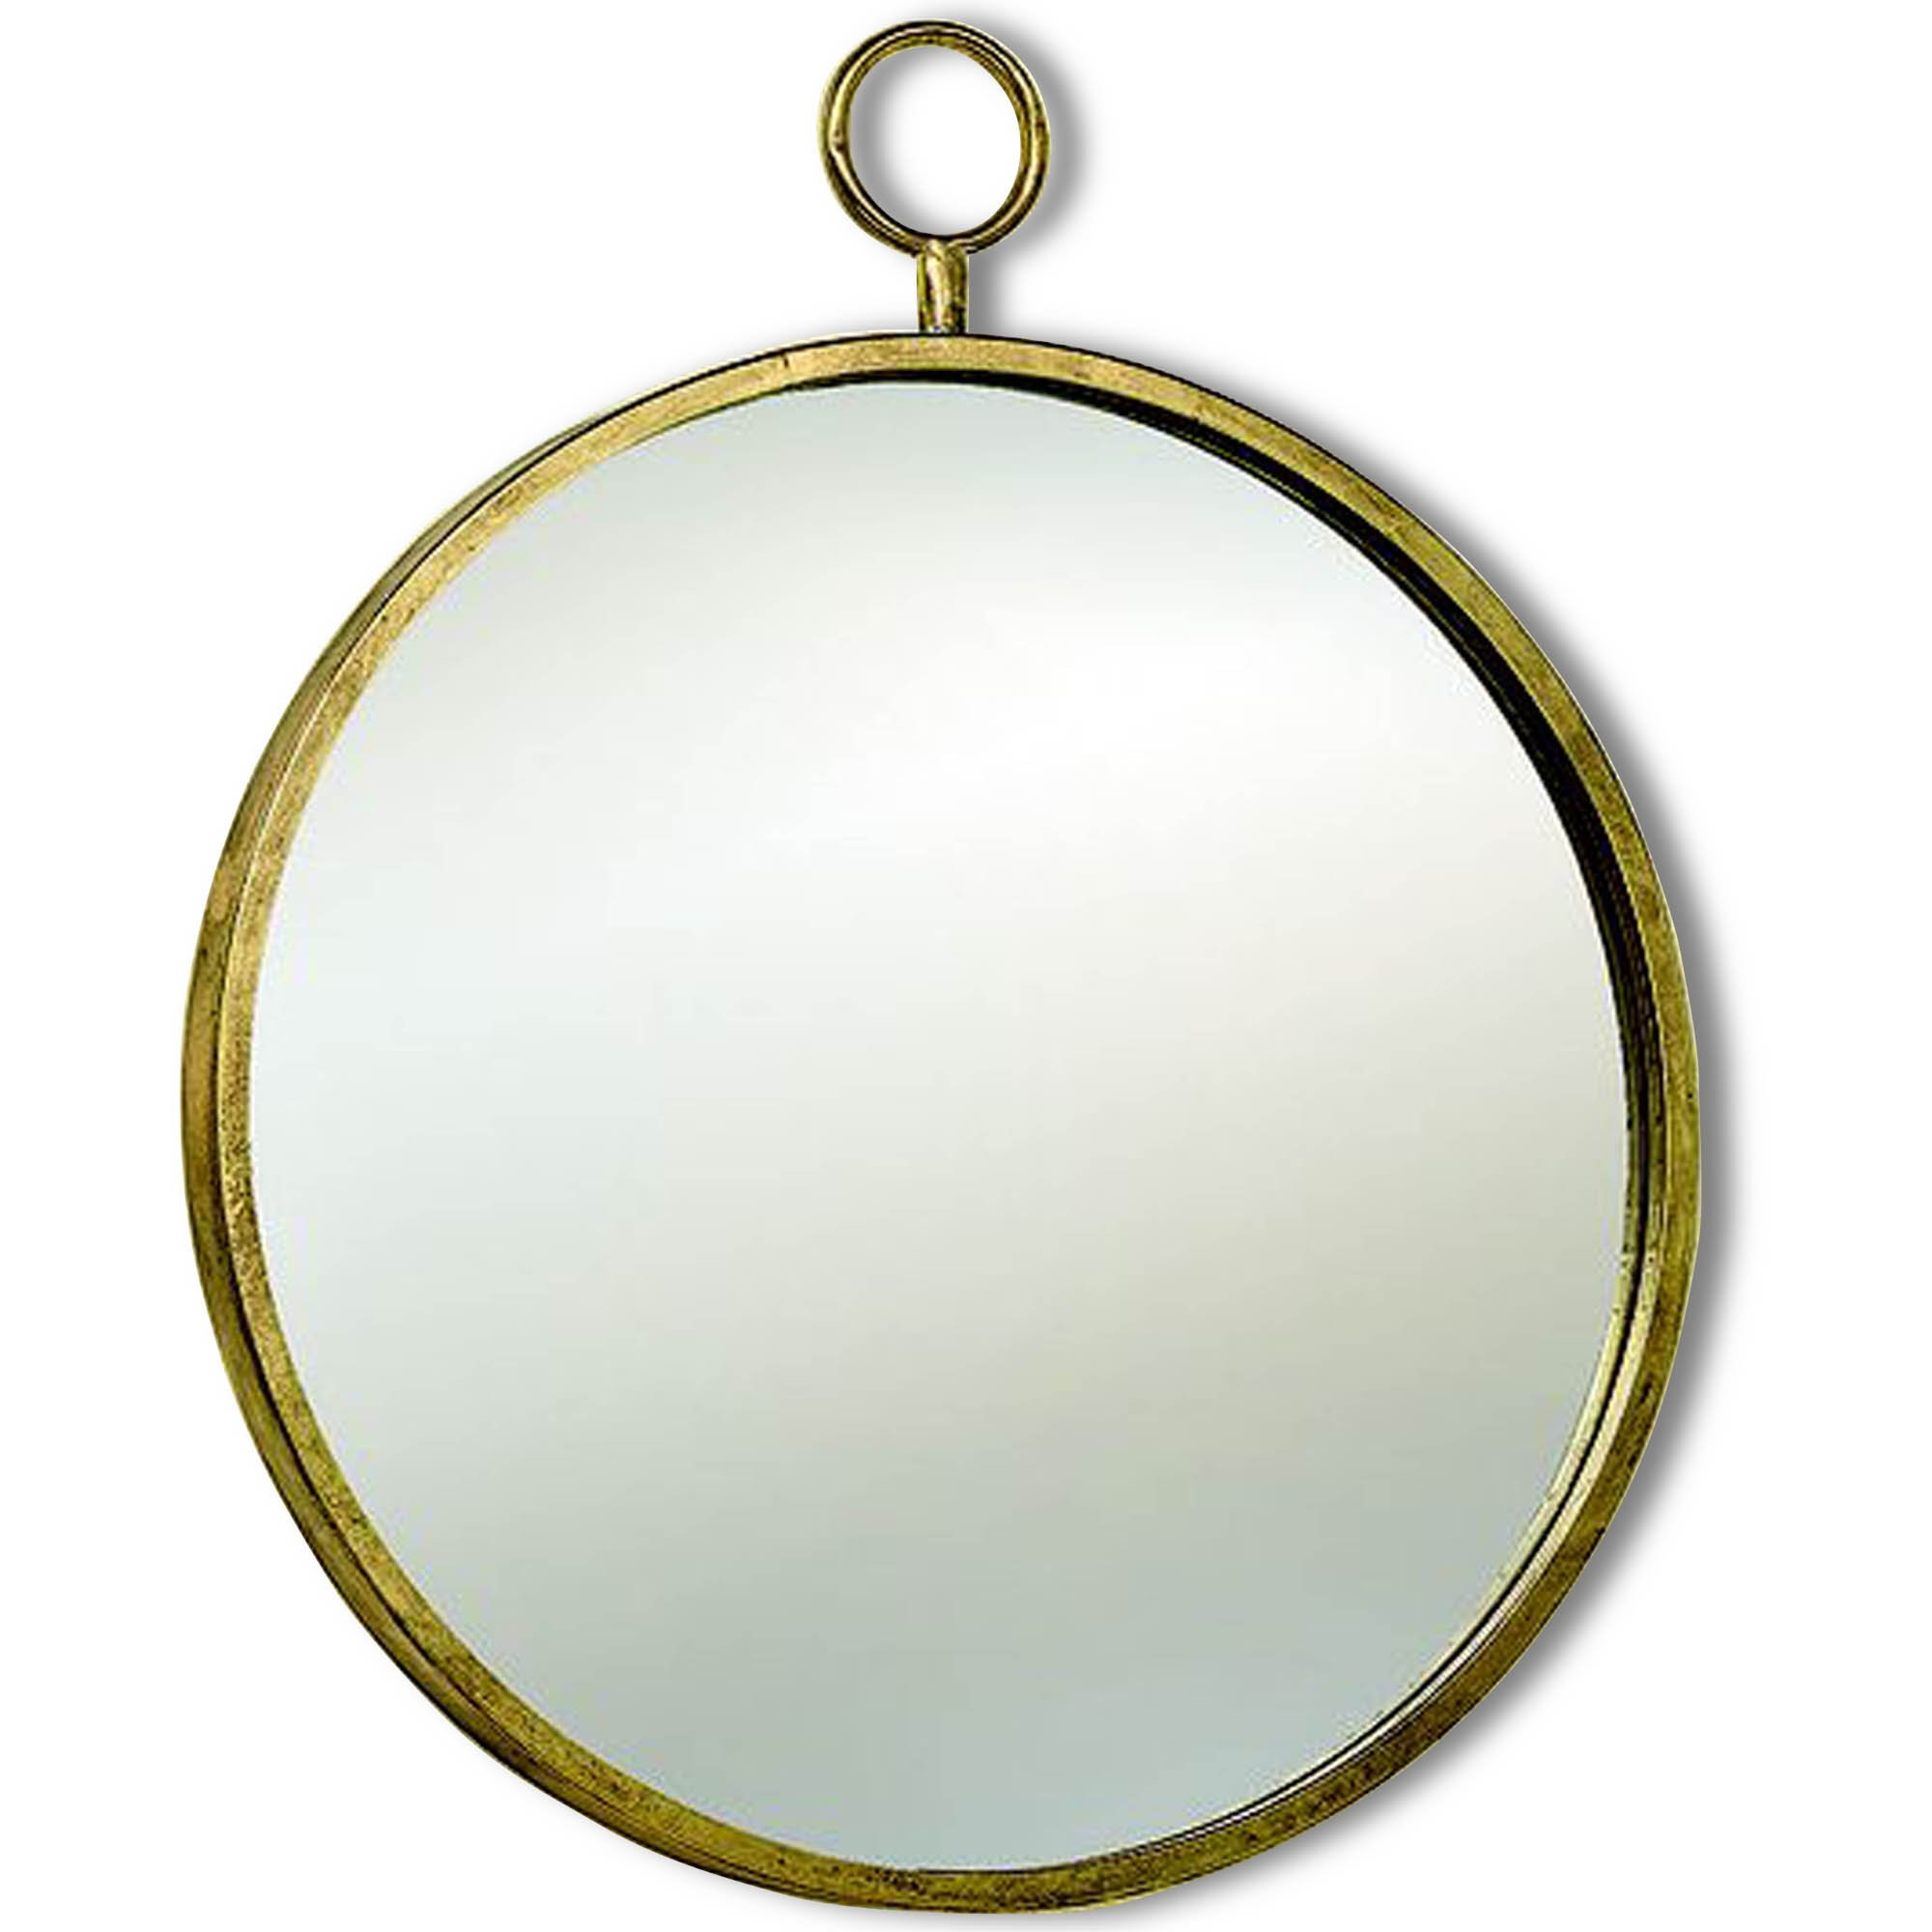 Iconic Pocket Watch Wall Mirror, Porthole Round Frame, Antique Gold Finish, Iron, Glass, 21 3/4 Diameter x 26 Inches Tall, From the Grand Tour Collection